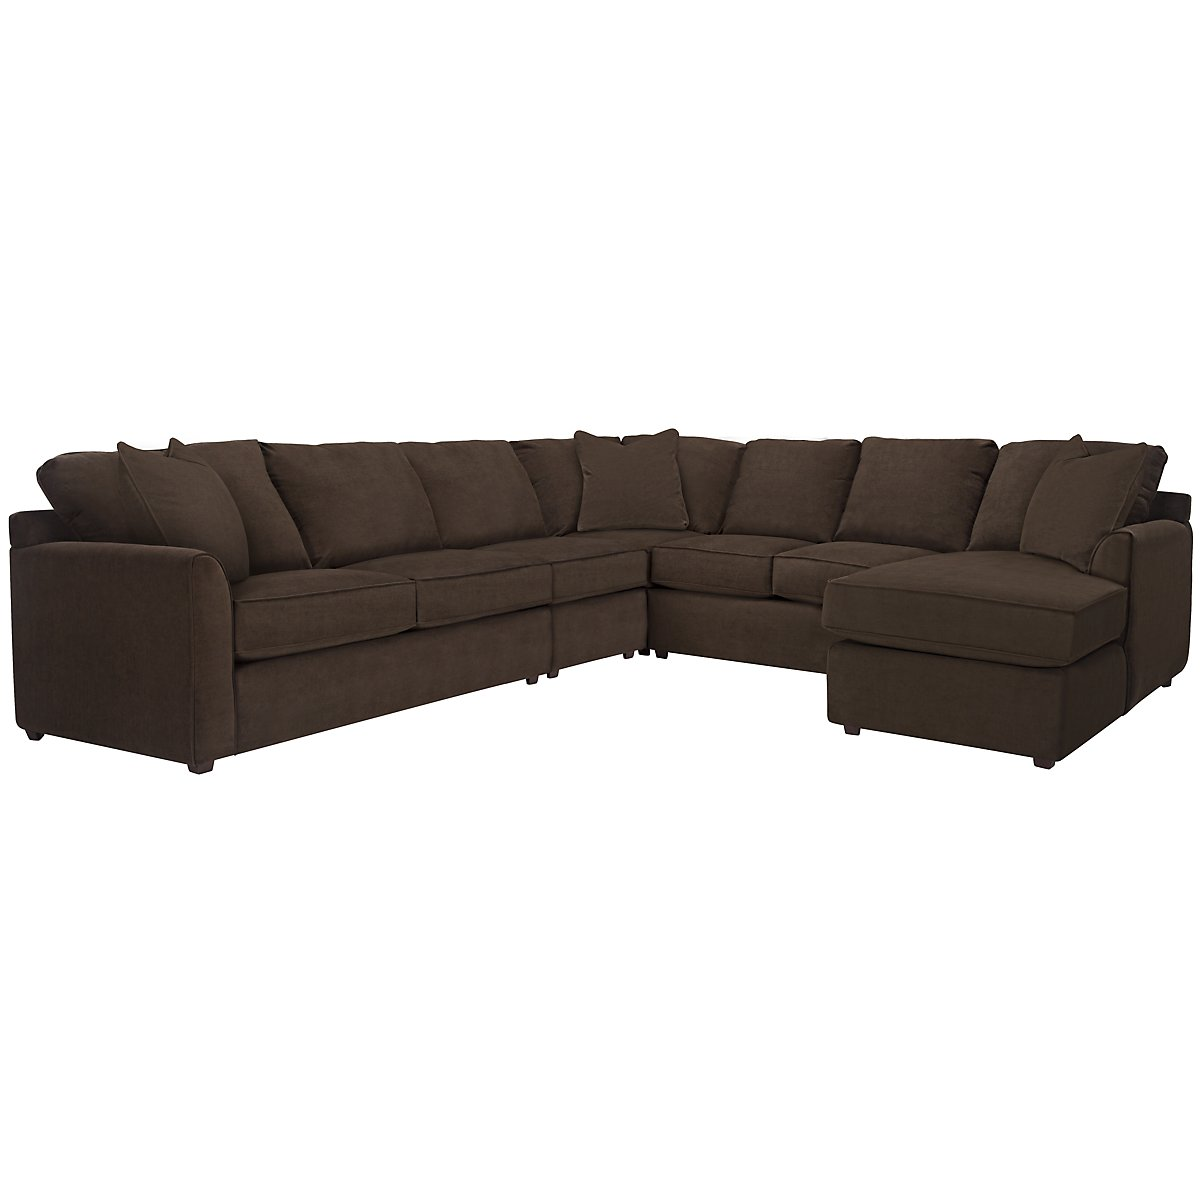 Express3 Dk Brown Microfiber Large Right Chaise Sectional